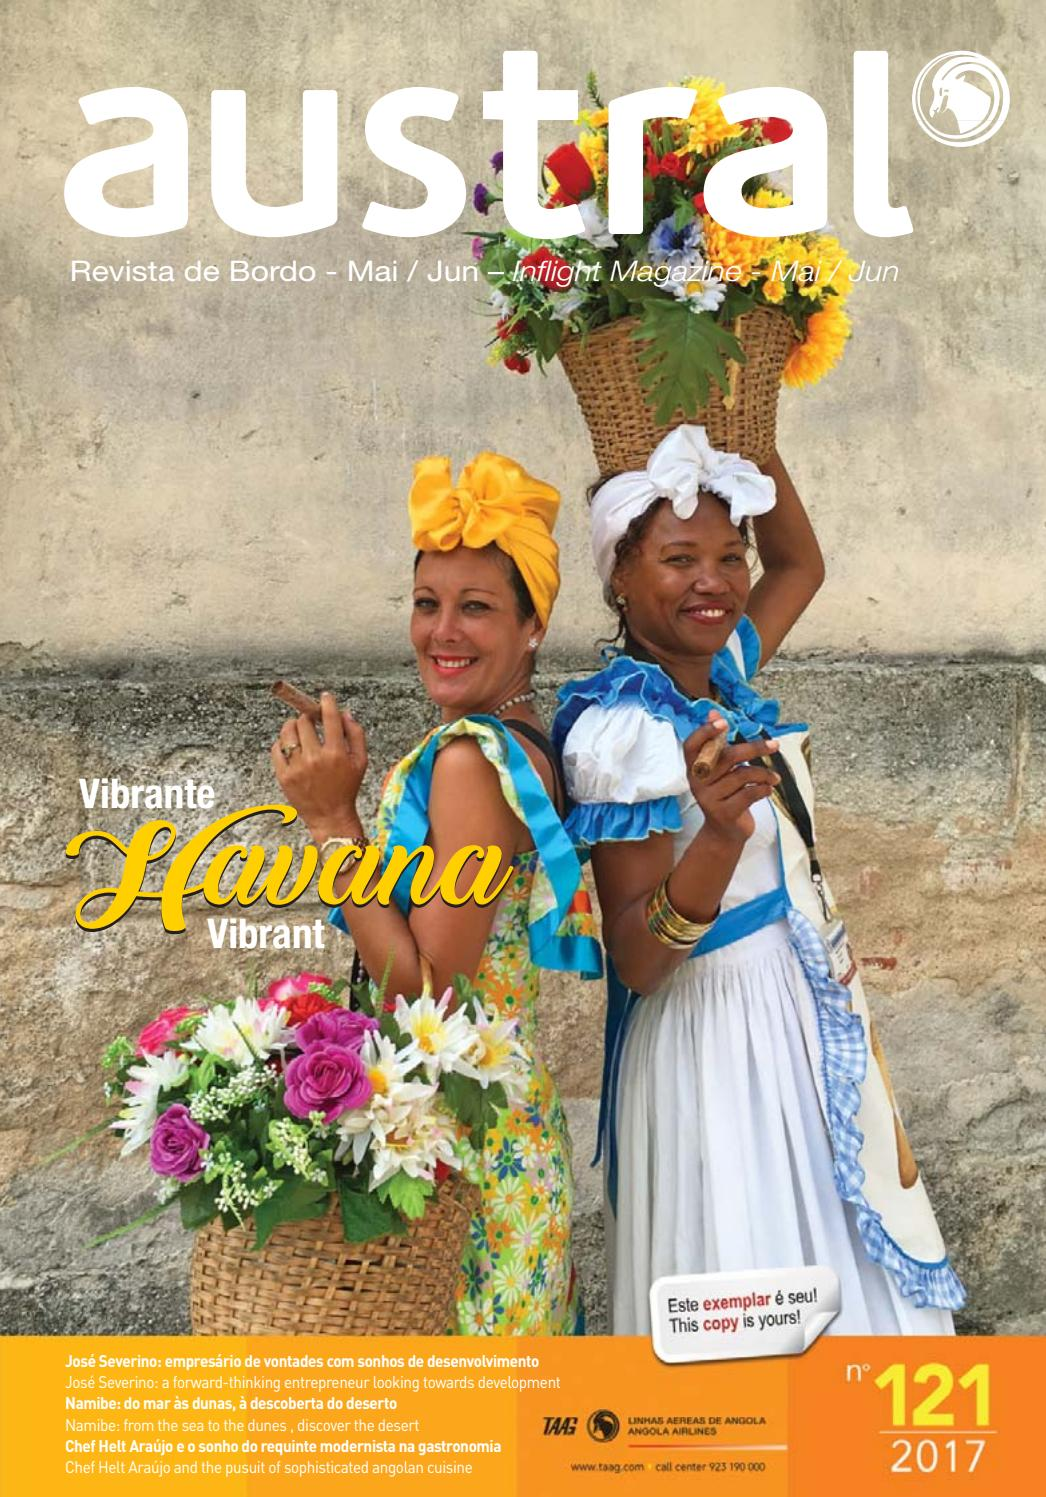 Revista austral 1212017 taag linhas areas de angola by taag revista austral 1212017 taag linhas areas de angola by taag linhas areas de angola issuu fandeluxe Image collections